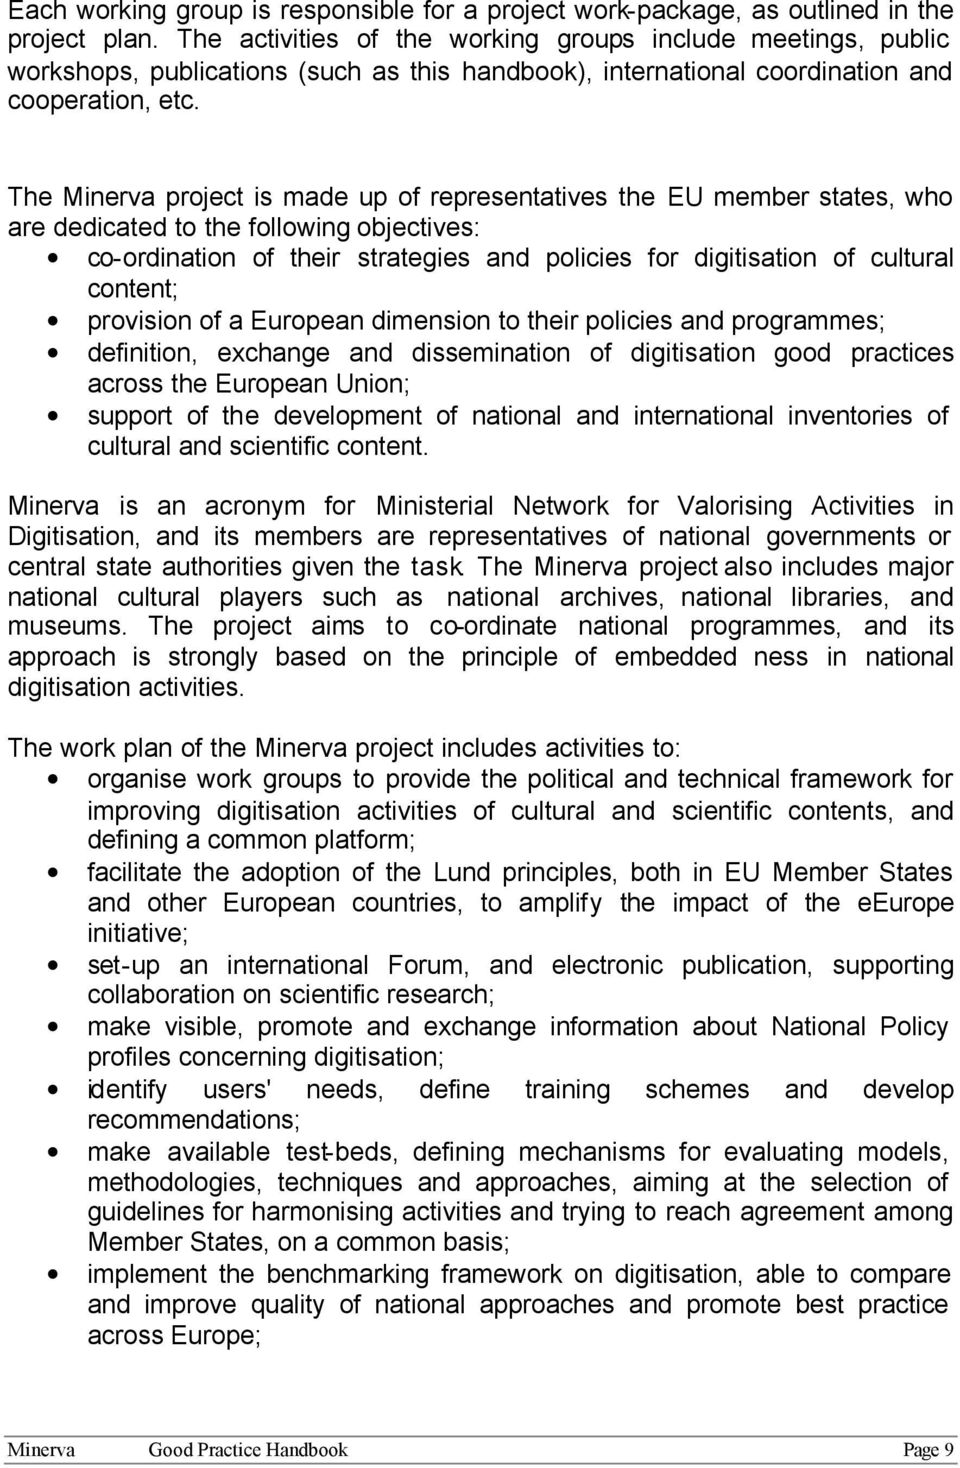 The Minerva project is made up of representatives the EU member states, who are dedicated to the following objectives: co-ordination of their strategies and policies for digitisation of cultural